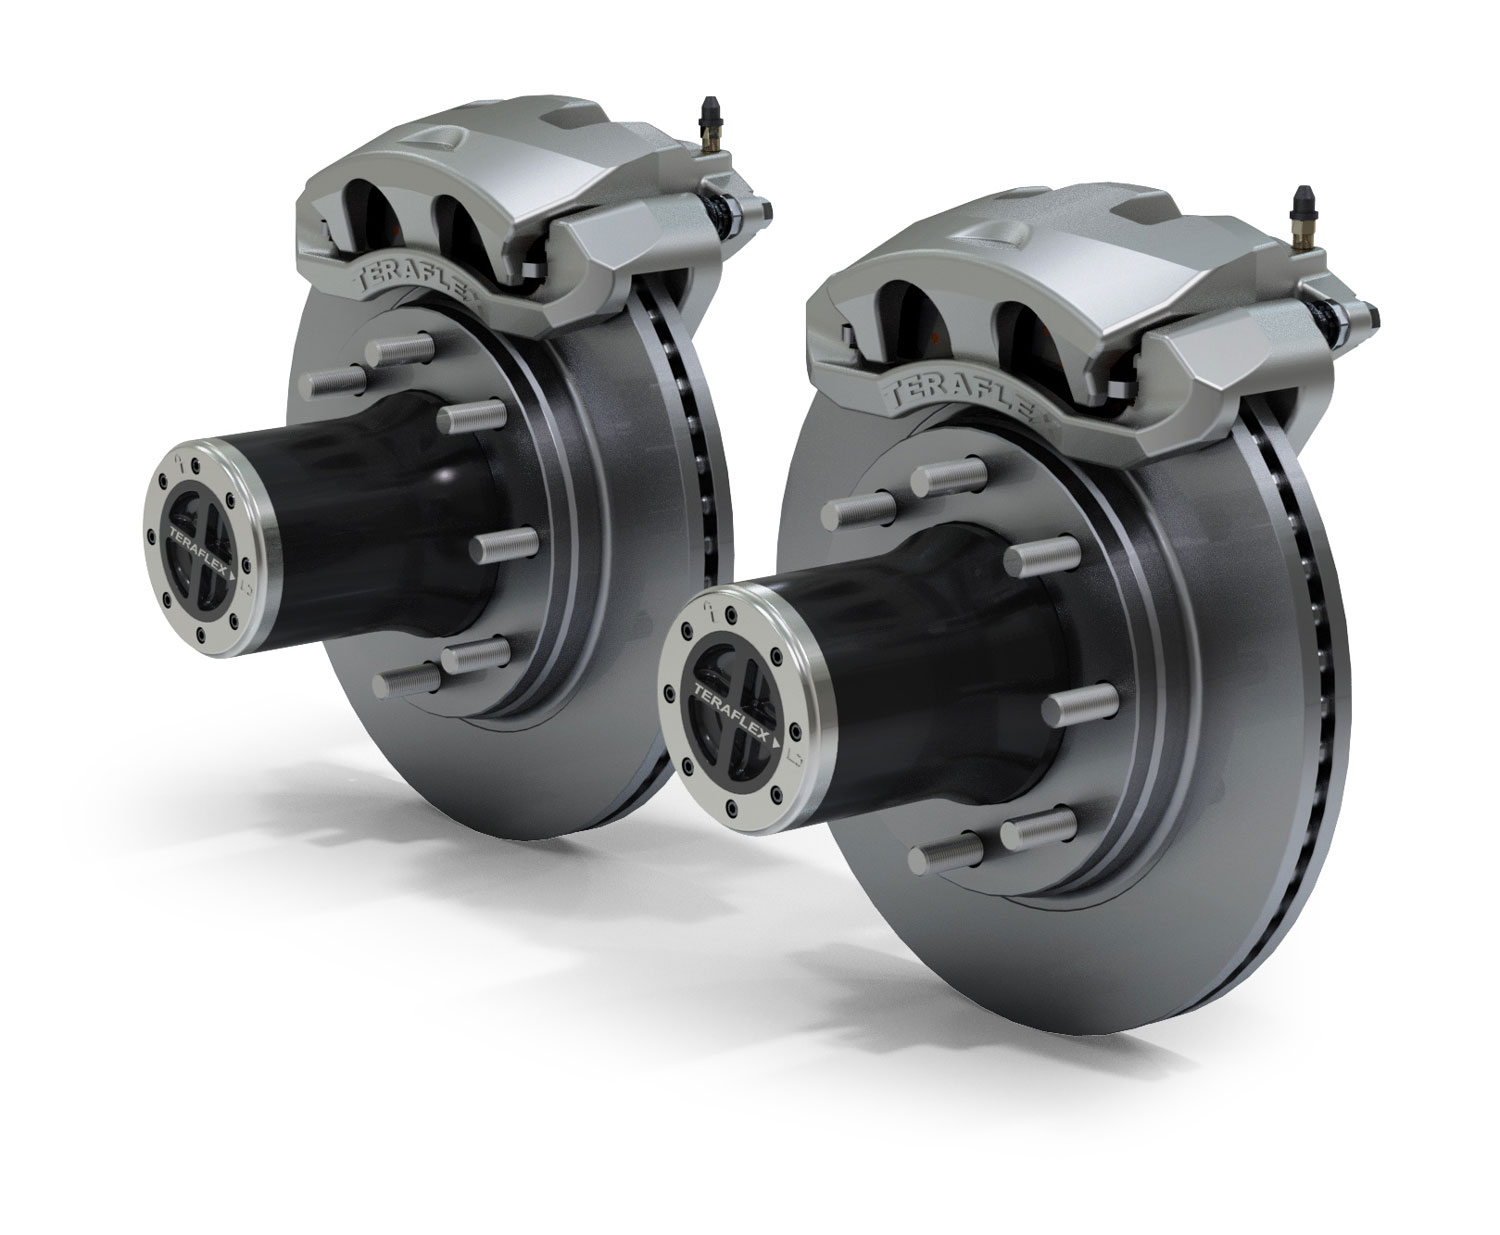 Teraflex JK Front 8-Lug Locking Hub Conversion Kit w/ Big Brakes - JK